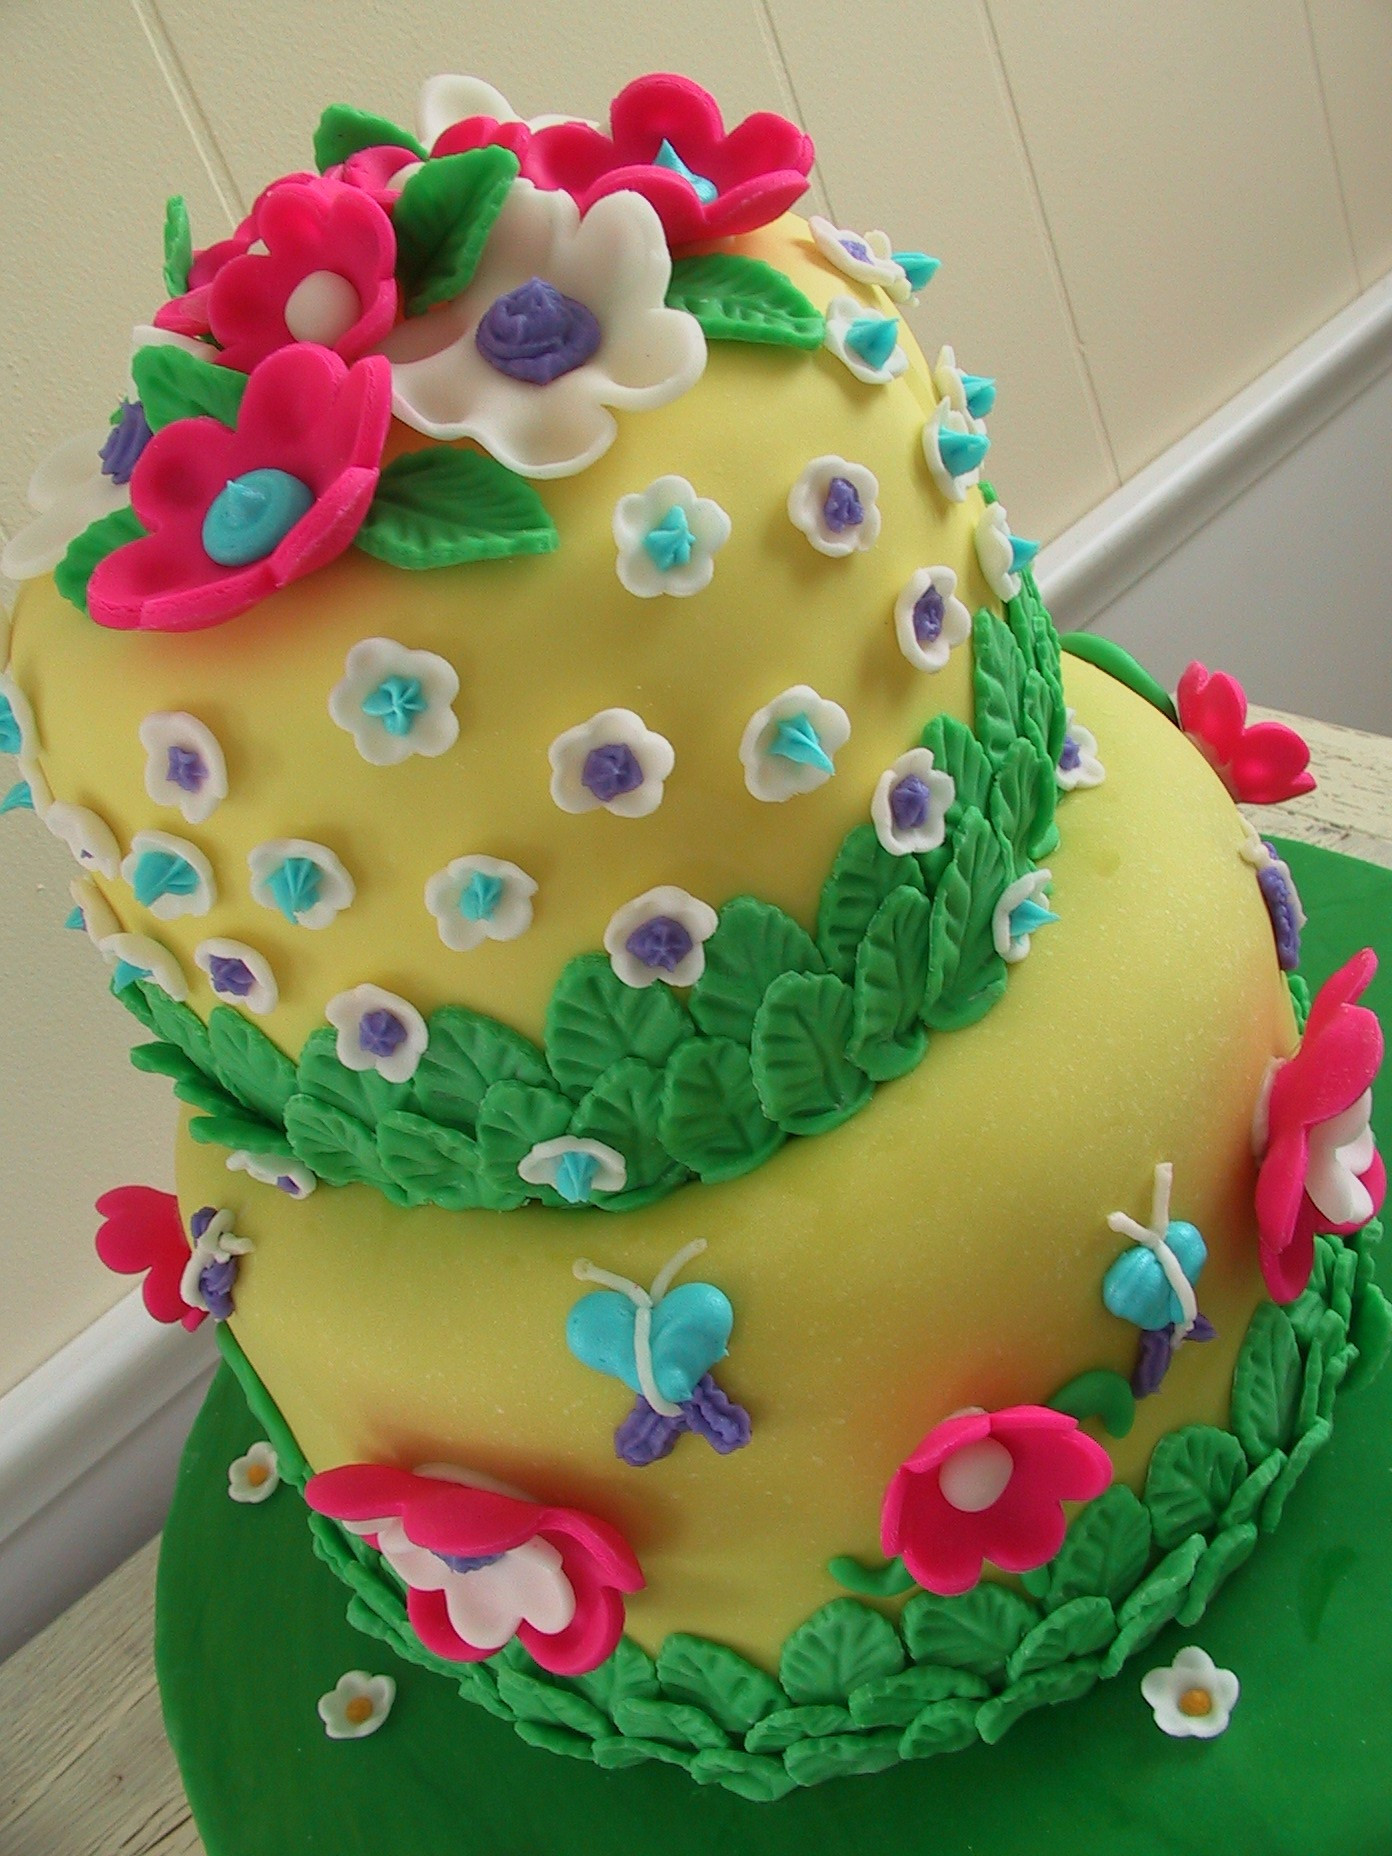 Fondant Birthday Cakes  Butterflies flowers and fondant Birthday Cake